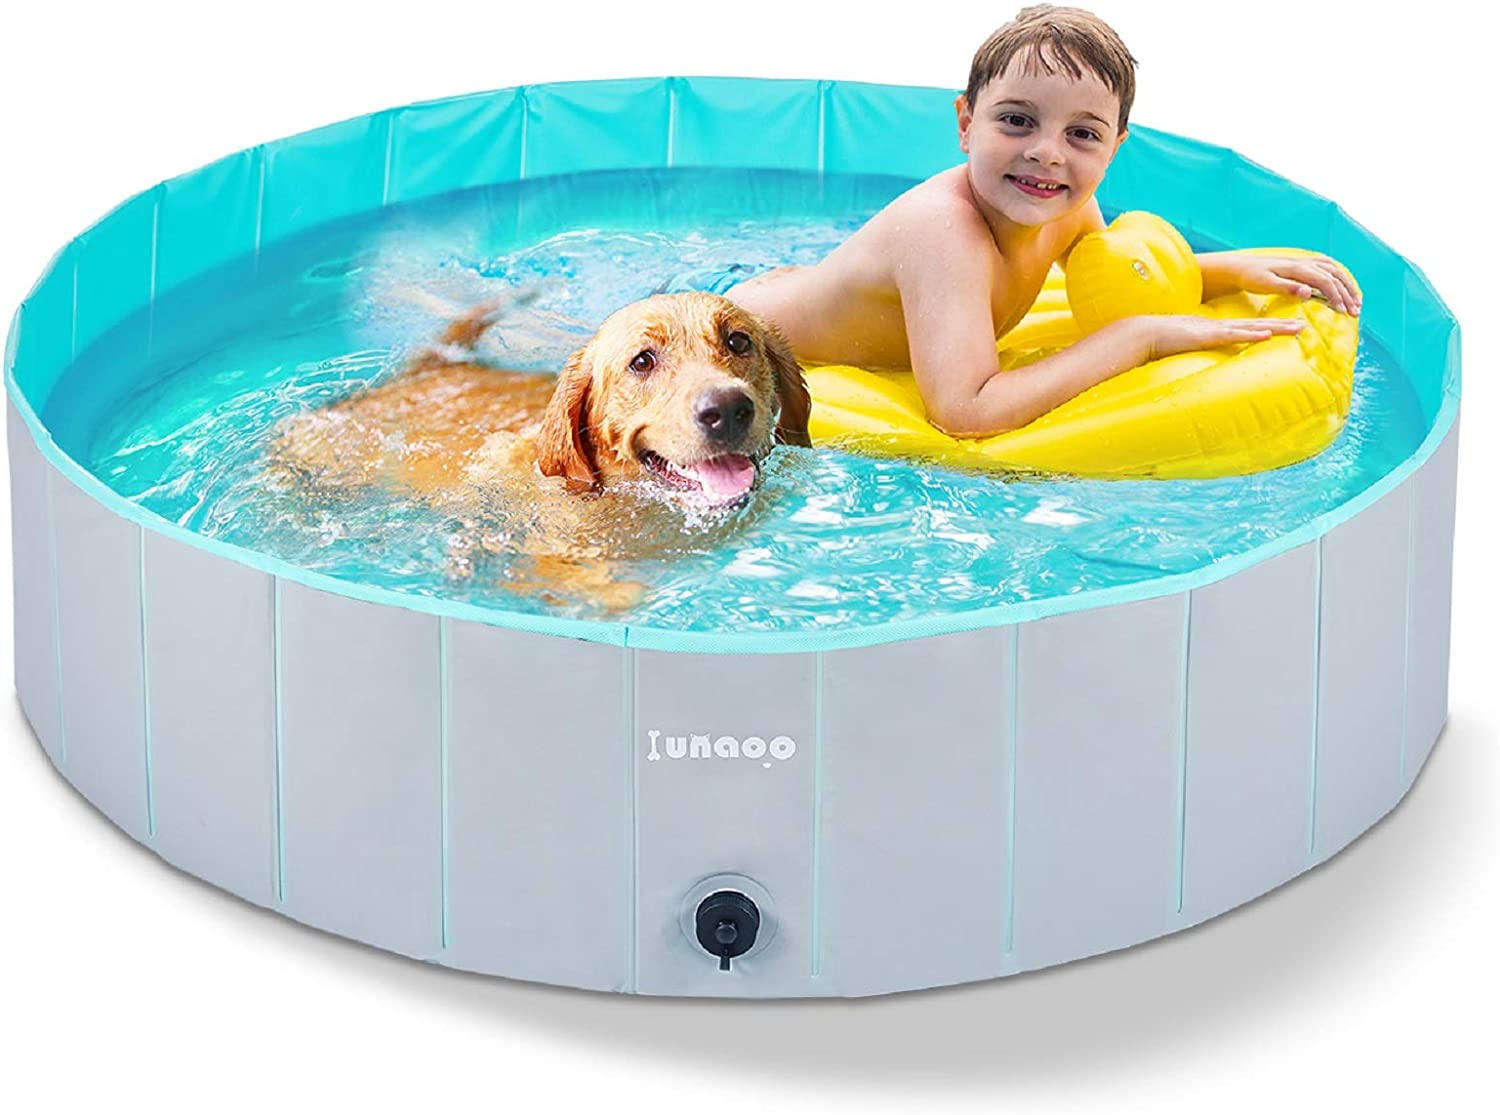 Lunaoo Foldable Dog Pool Portable Kiddie Pool For Kids Pvc Bathing Tub Outdoor Swimming Pool For Large Small Dogs Amazon Ca Pet Supplies